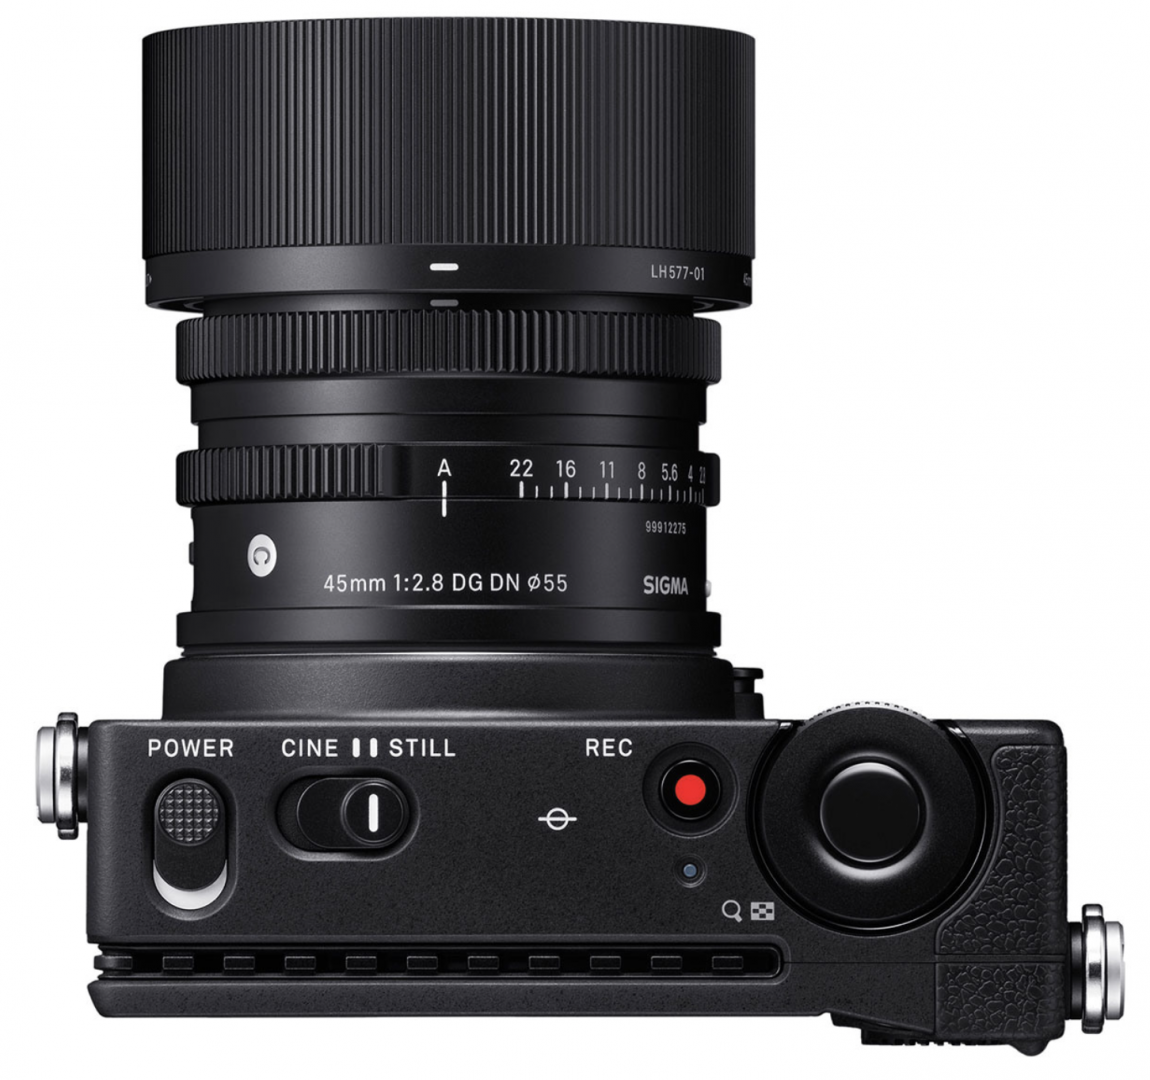 The Sigma 45mm f/2.8 was designed to match the world's smallest full-frame mirrorless camera, the Sigma fp. Yet it is in demand by owners of bulkier SLs and Lumix S cameras as an effective alternatve to today's bulky L-Mount primes